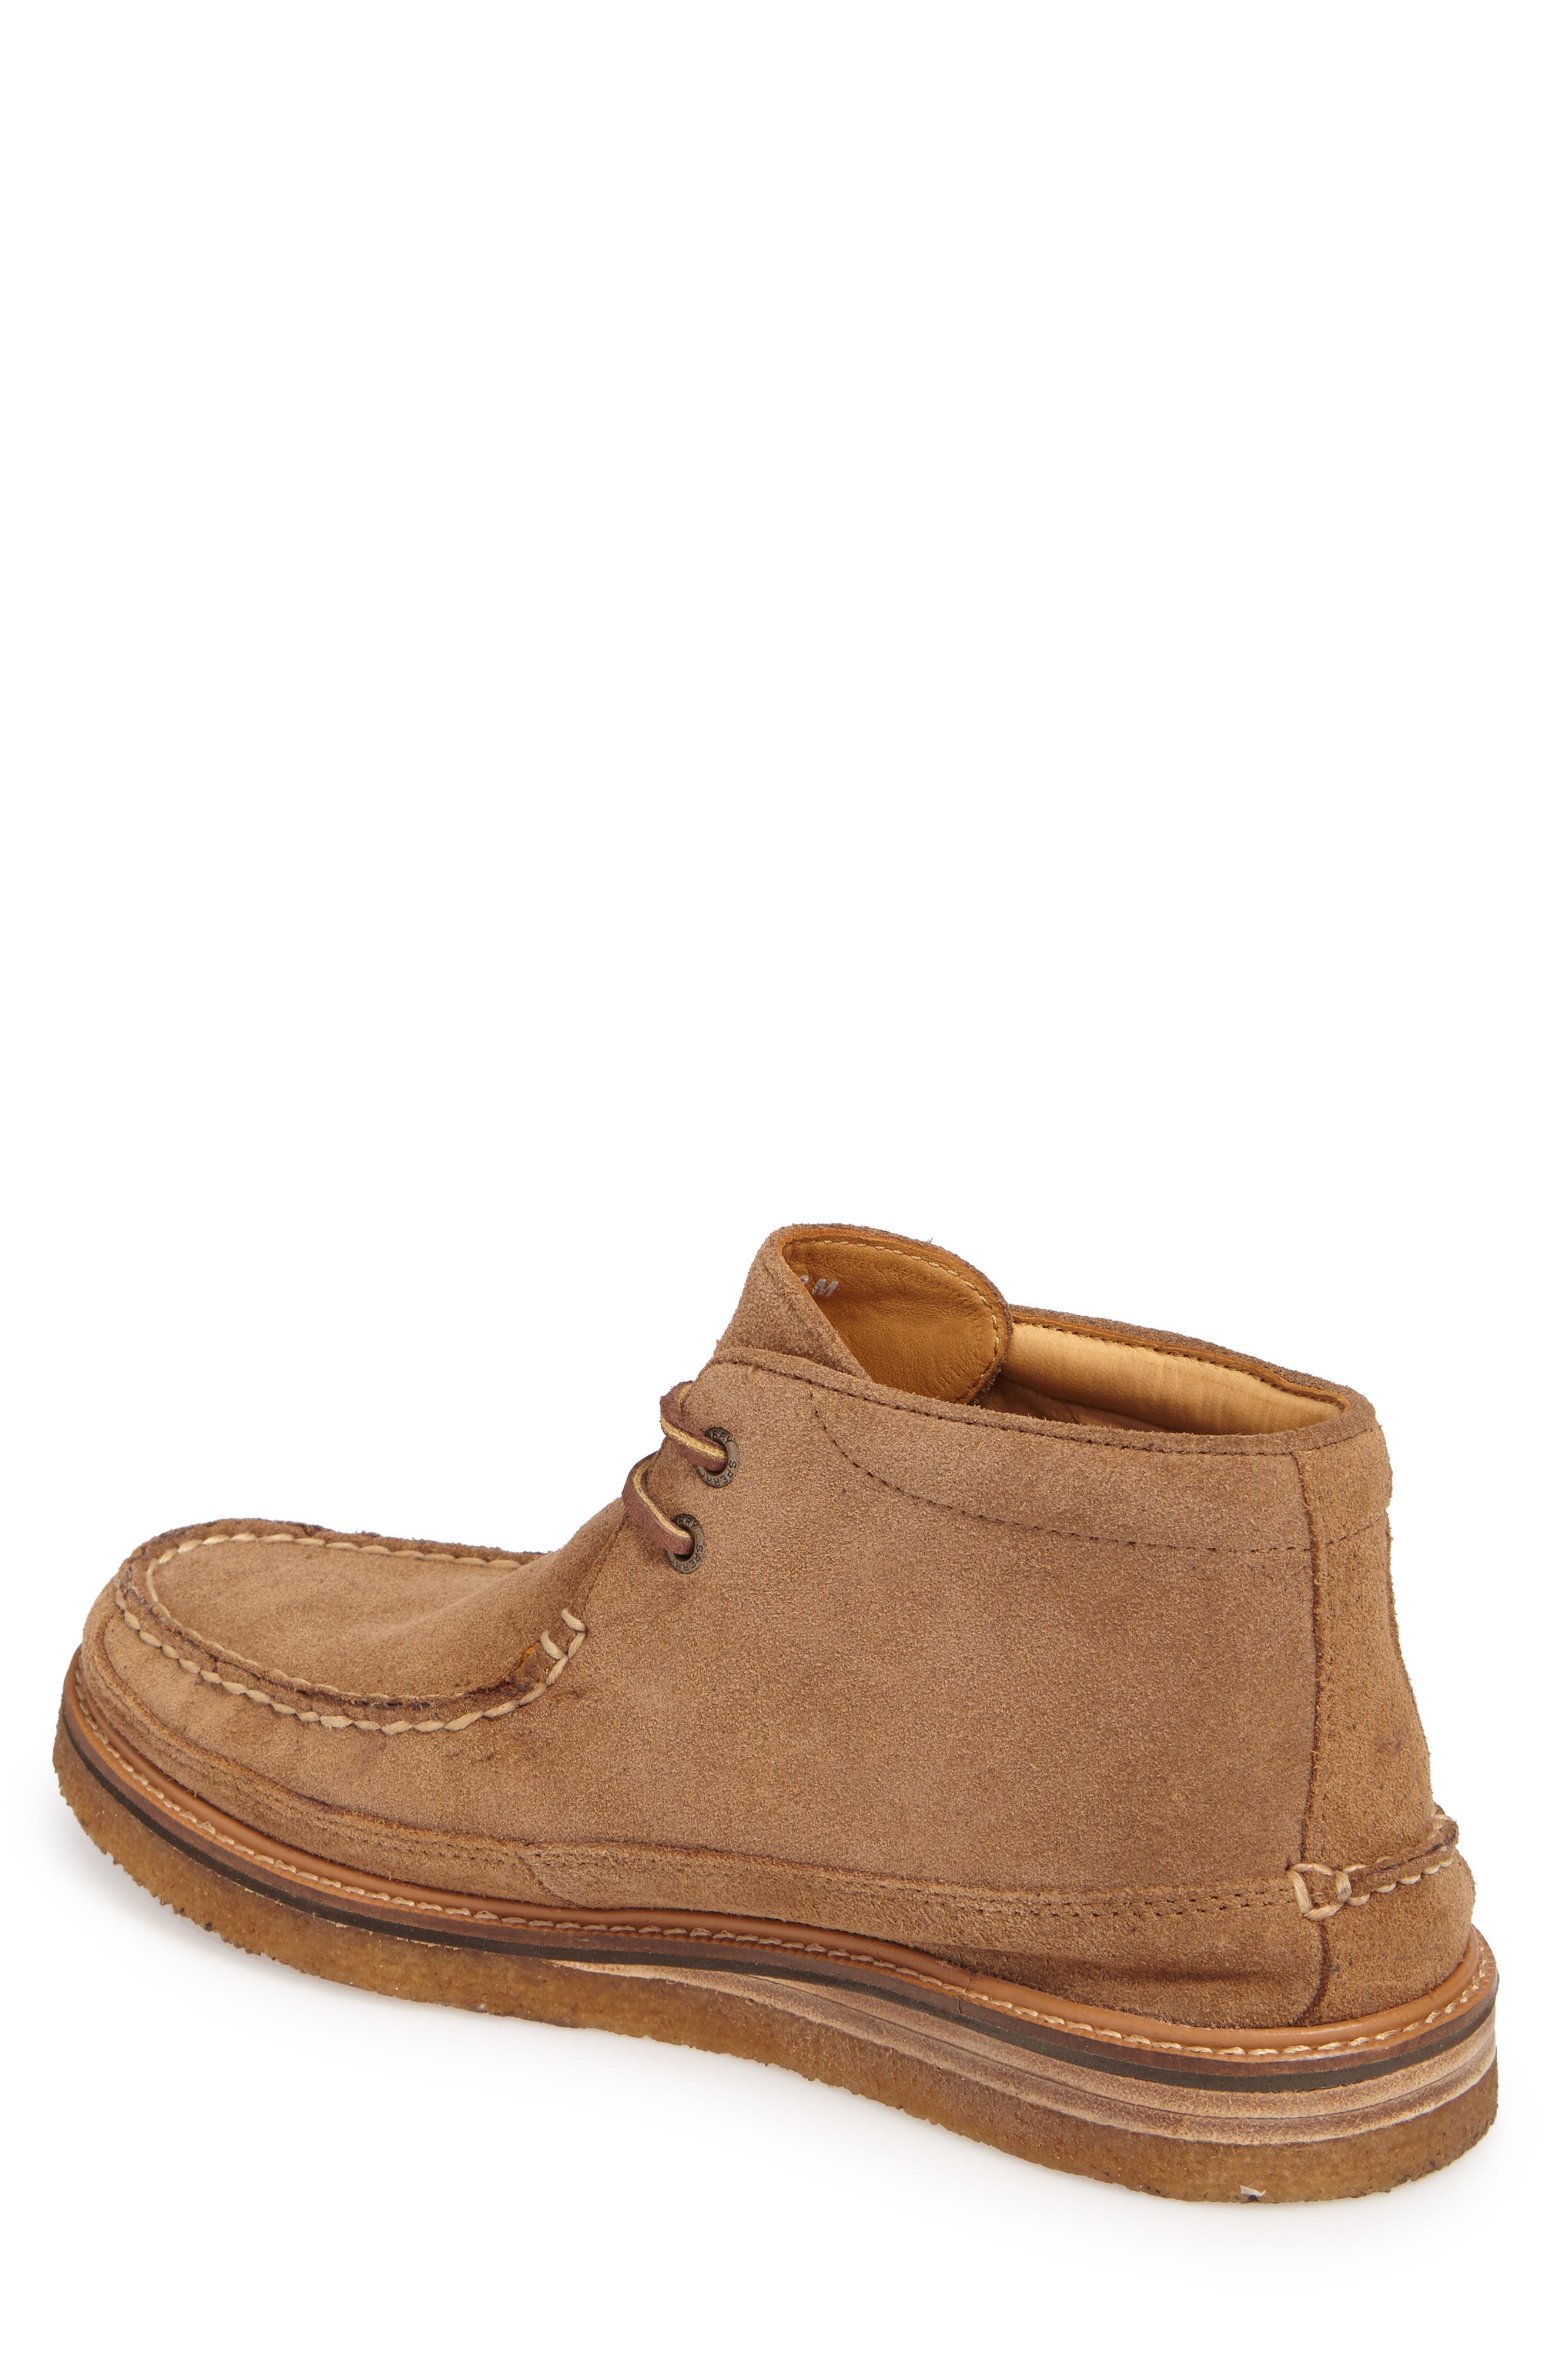 Gold Cup Chukka Boot,                             Alternate thumbnail 2, color,                             Caramel Suede